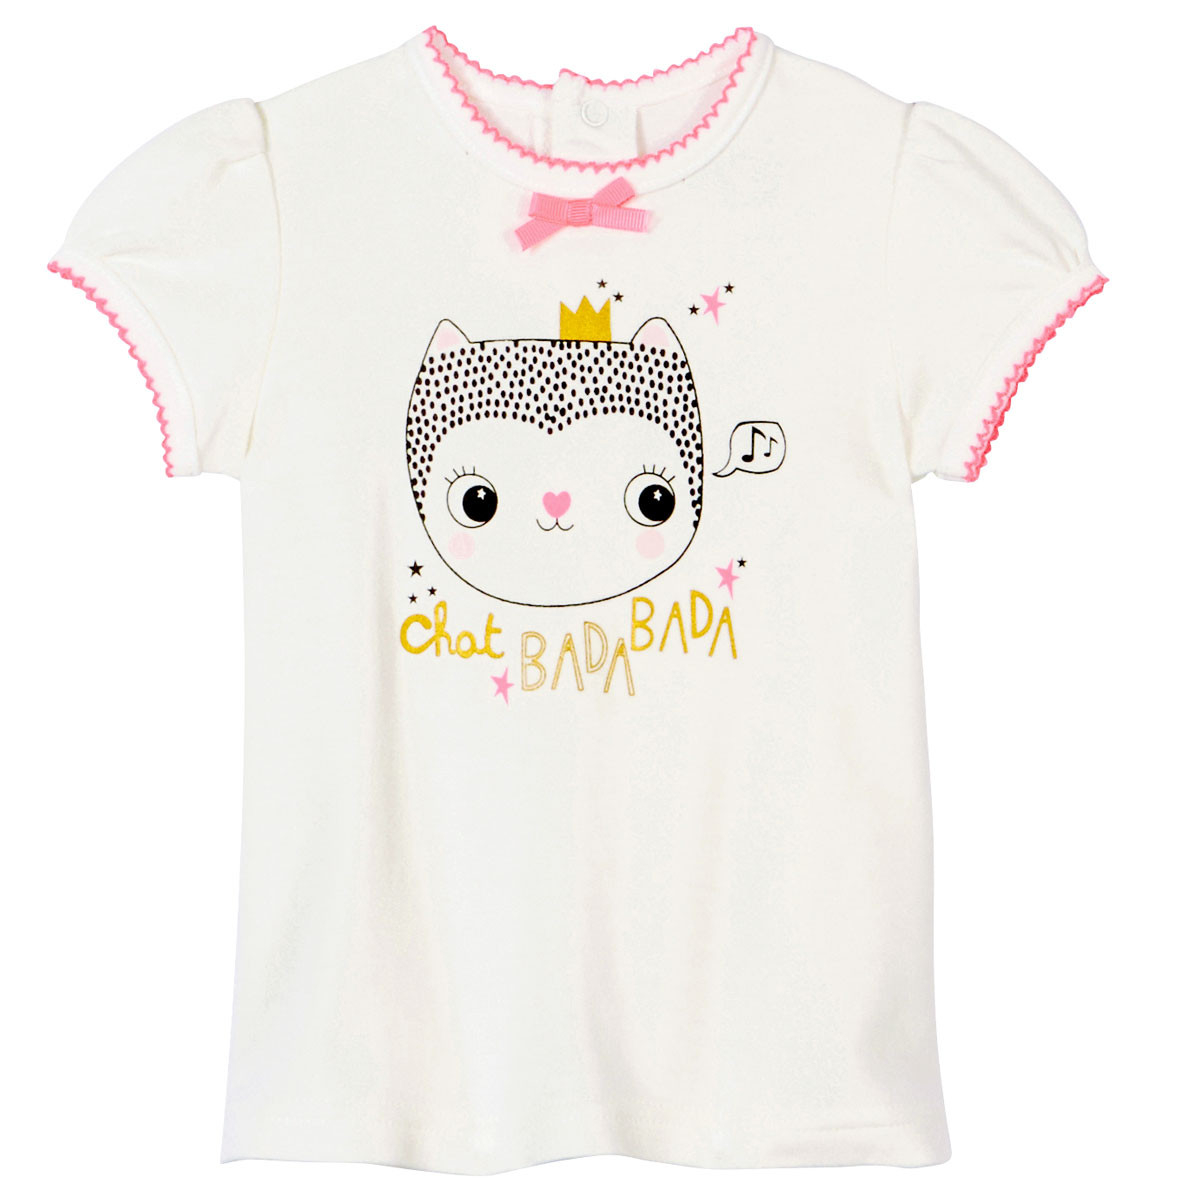 Ensemble bébé fille t-shirt + sarouel Chatbada